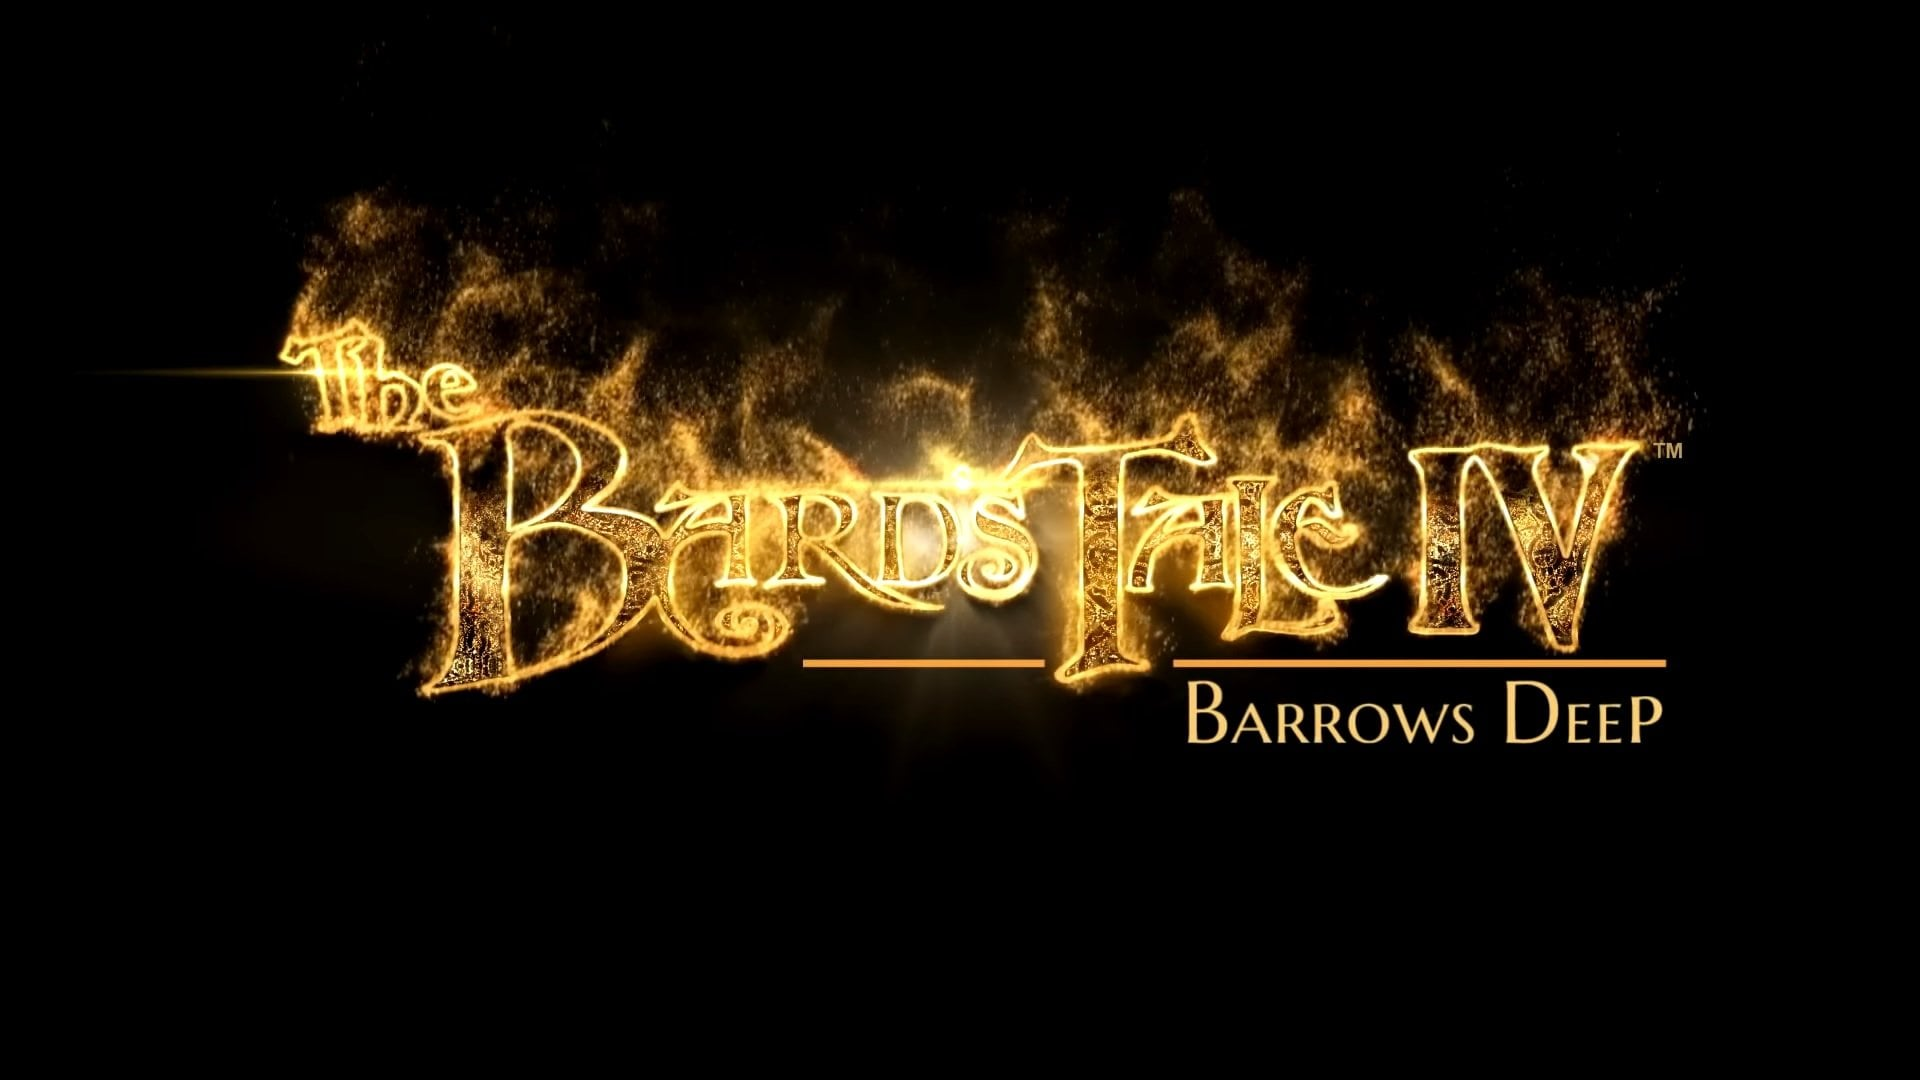 The Bard's Tale IV: Barrows Deep (PC – Steam) Review